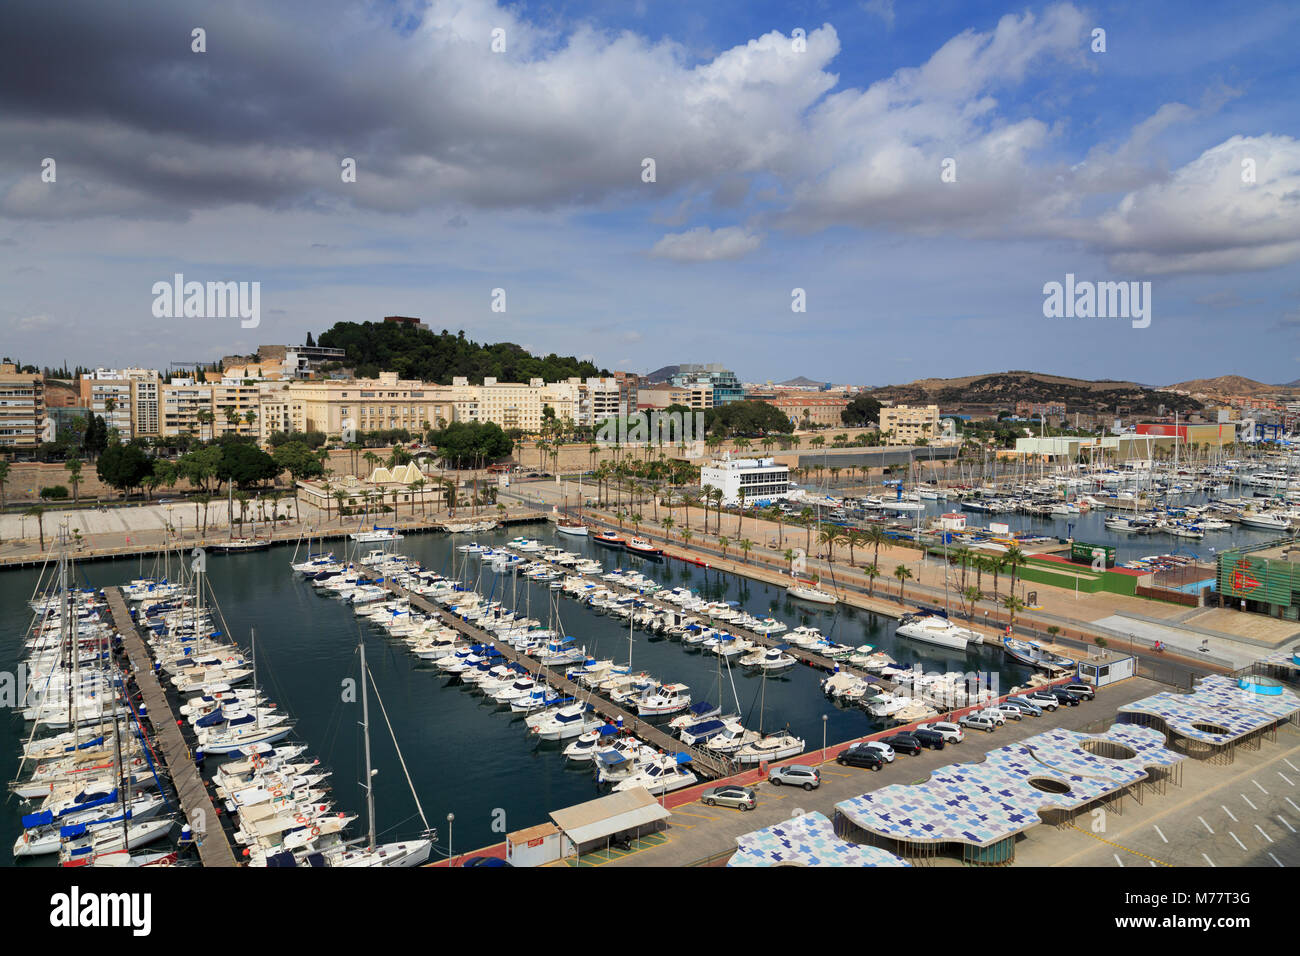 Yacht Marina, Cartagena, Murcia, Spain, Europe - Stock Image